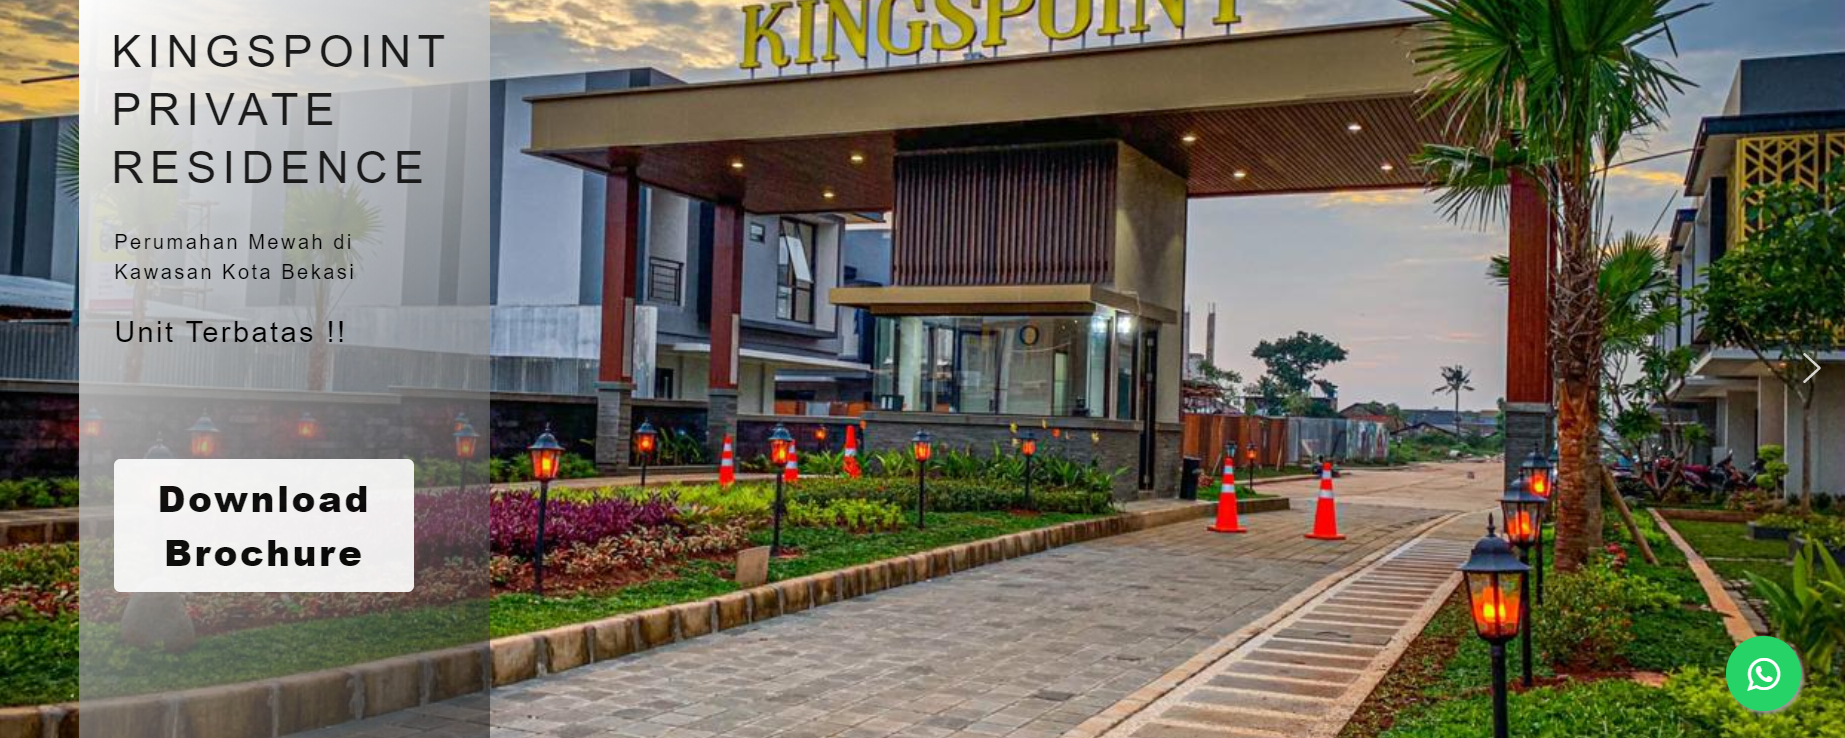 kingspoint